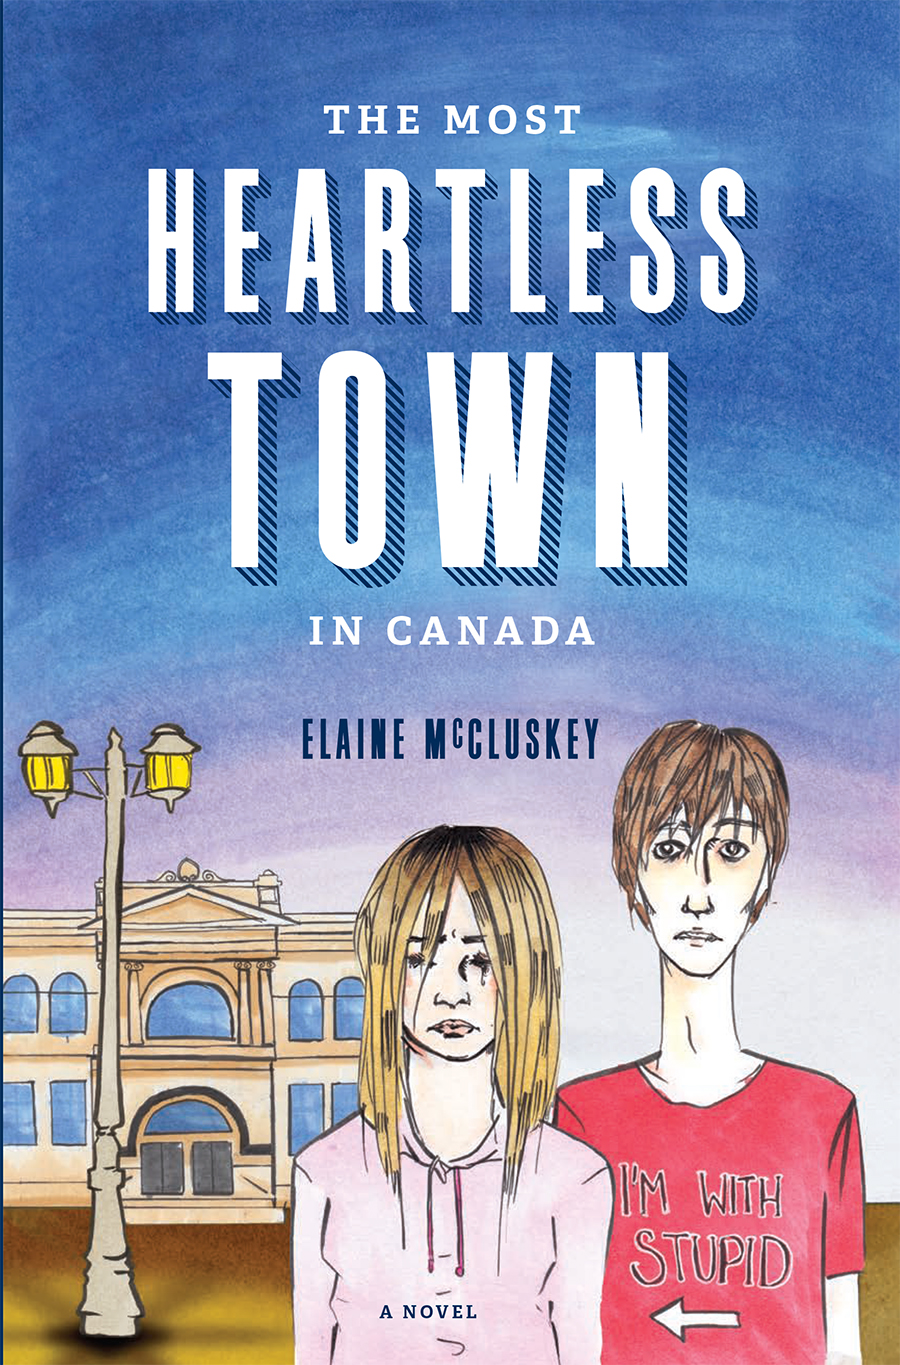 The Most Heartless Town in Canada